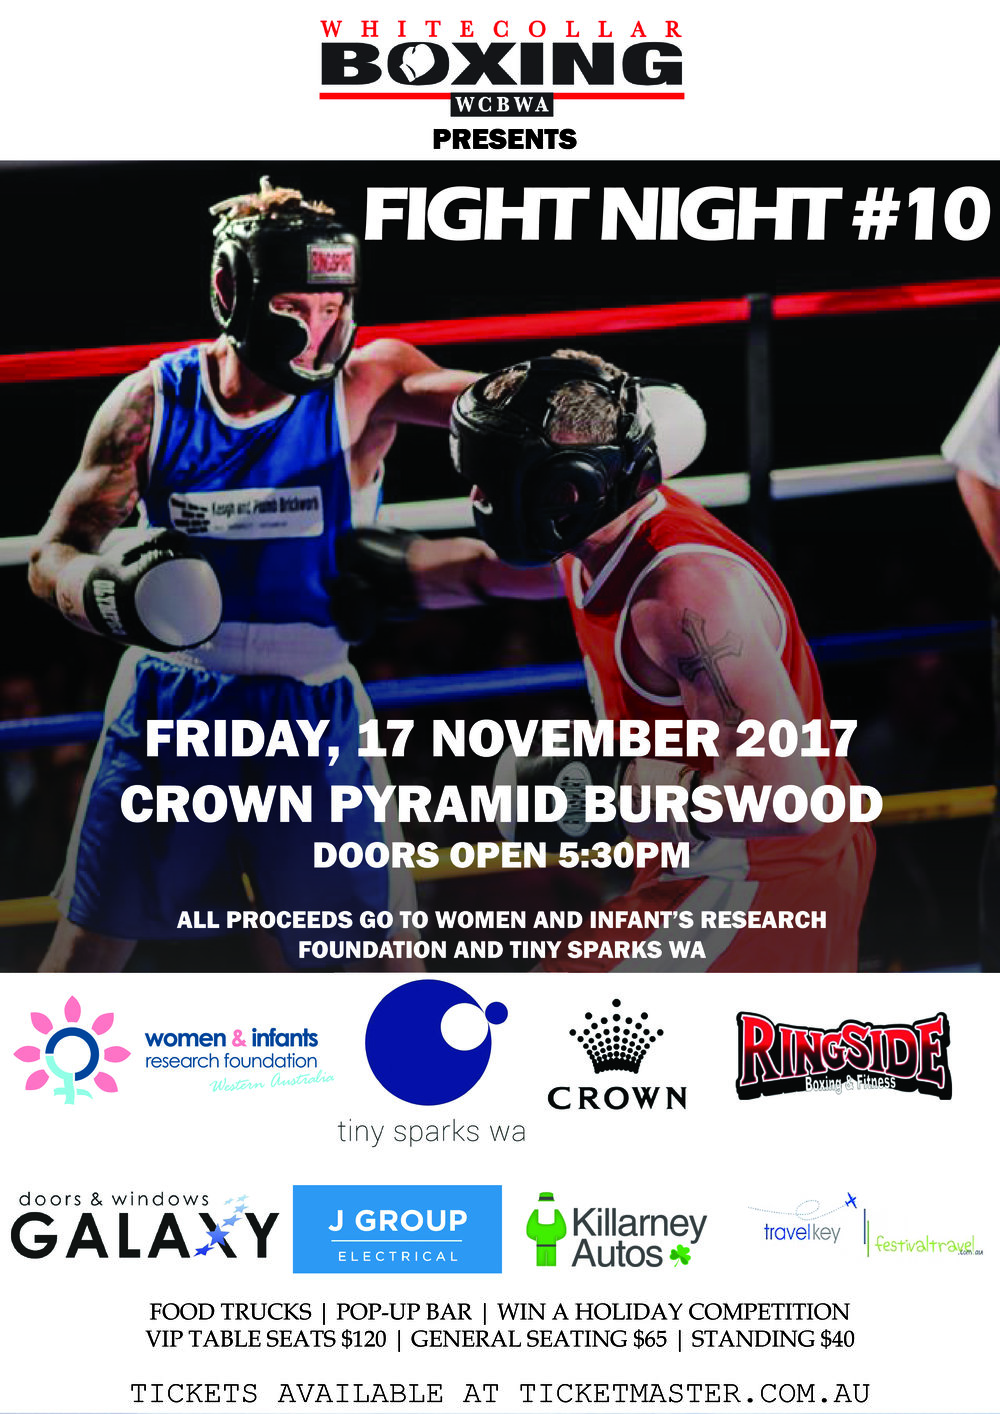 WHITE COLLAR BOXING POSTER.jpg